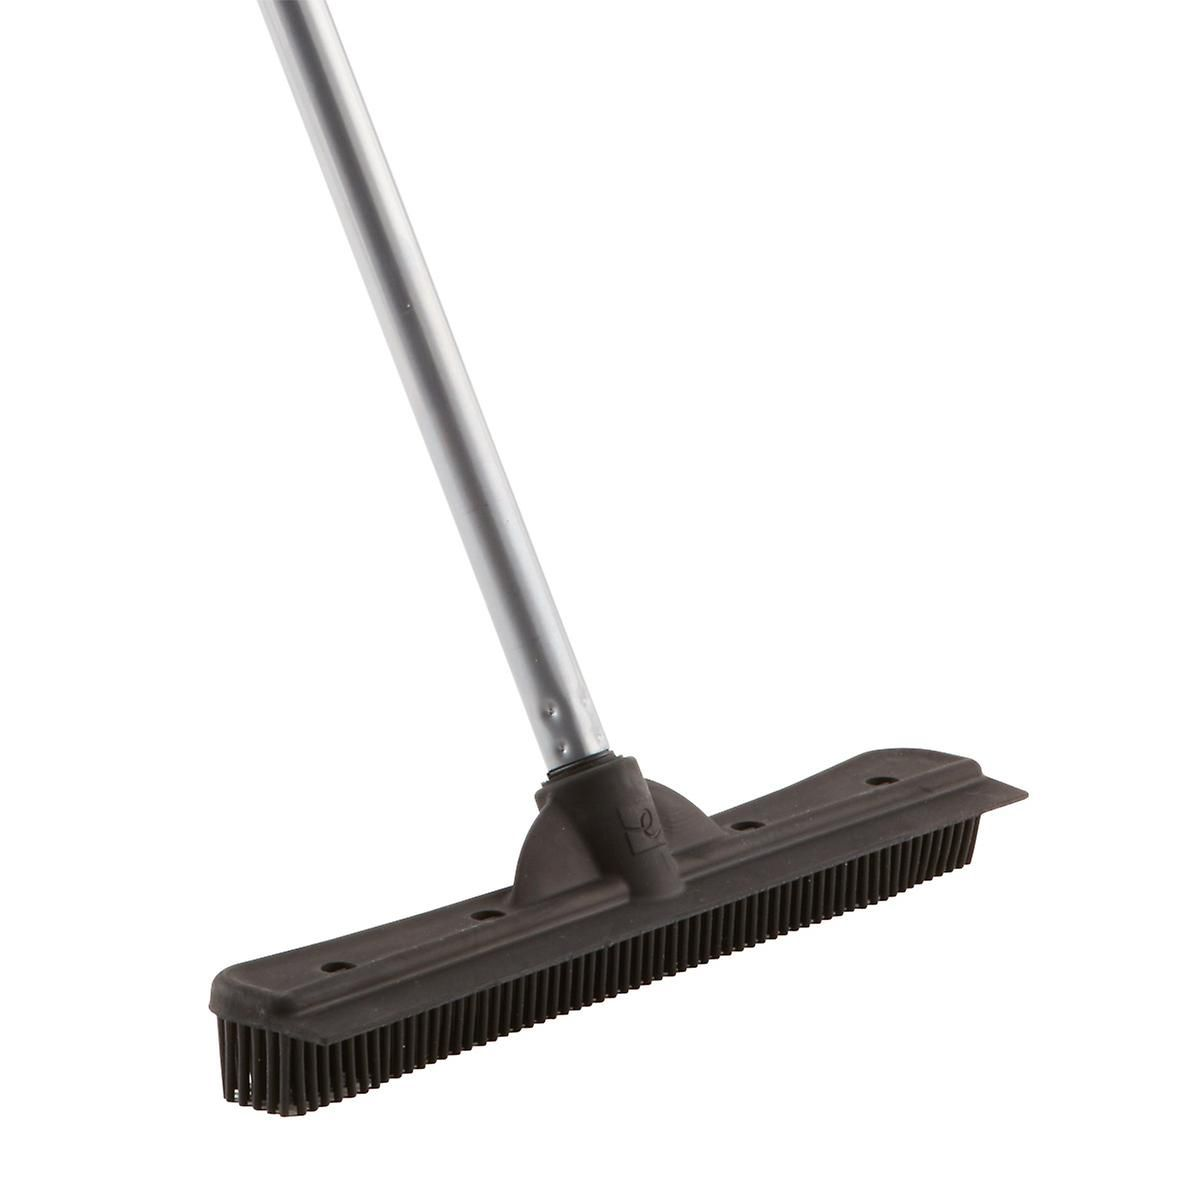 All Terrain Broom Amp Squeegee In 2019 Container Store